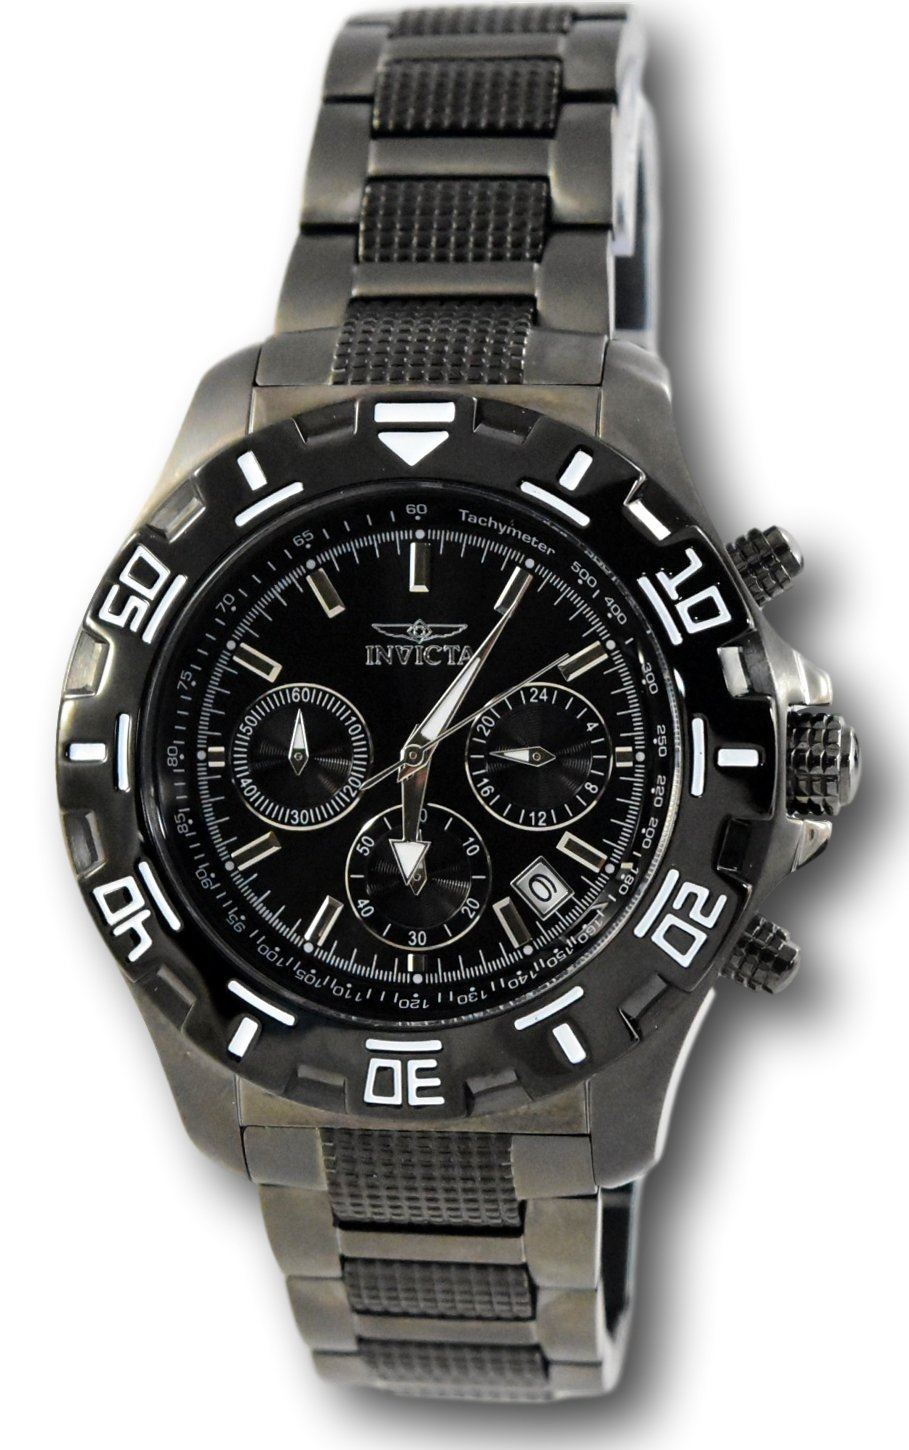 f58a30dd9 Invicta Python 6412 Men's Black Dial Stainless Steel Chronograph ...